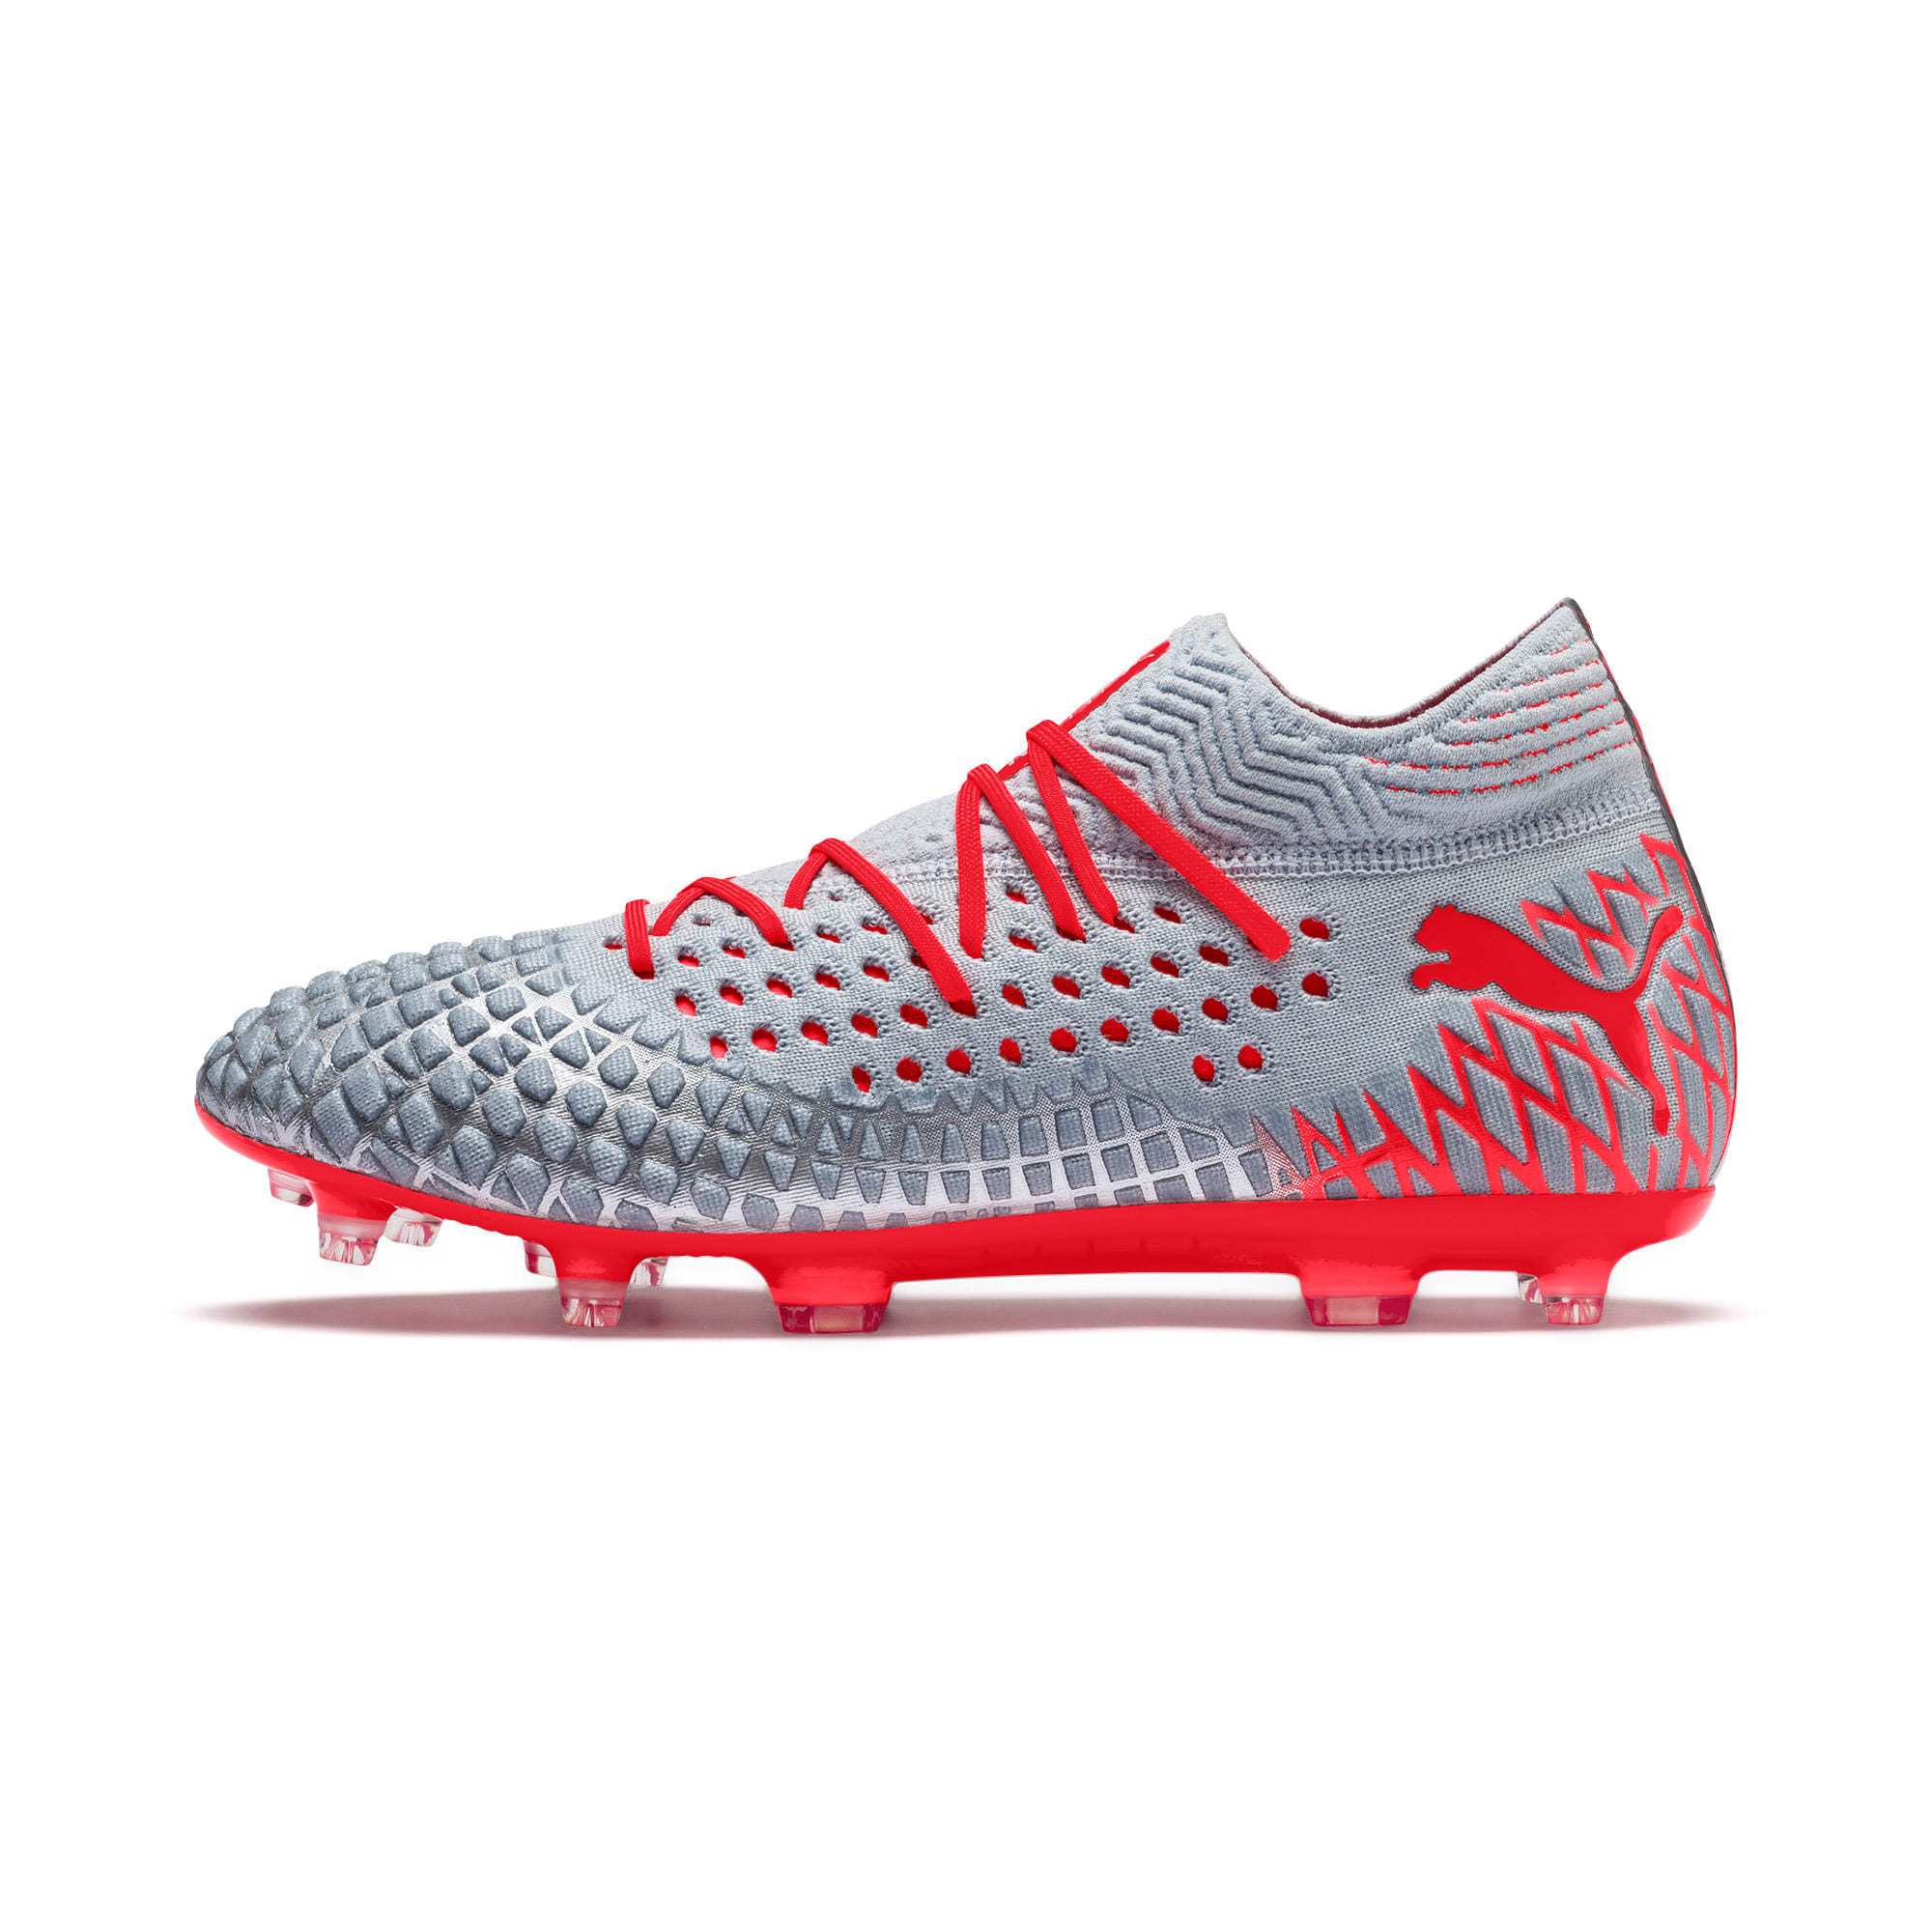 Thumbnail 1 of FUTURE 4.1 NETFIT FG/AG Men's Football Boots, Blue-Nrgy Red-High Risk Red, medium